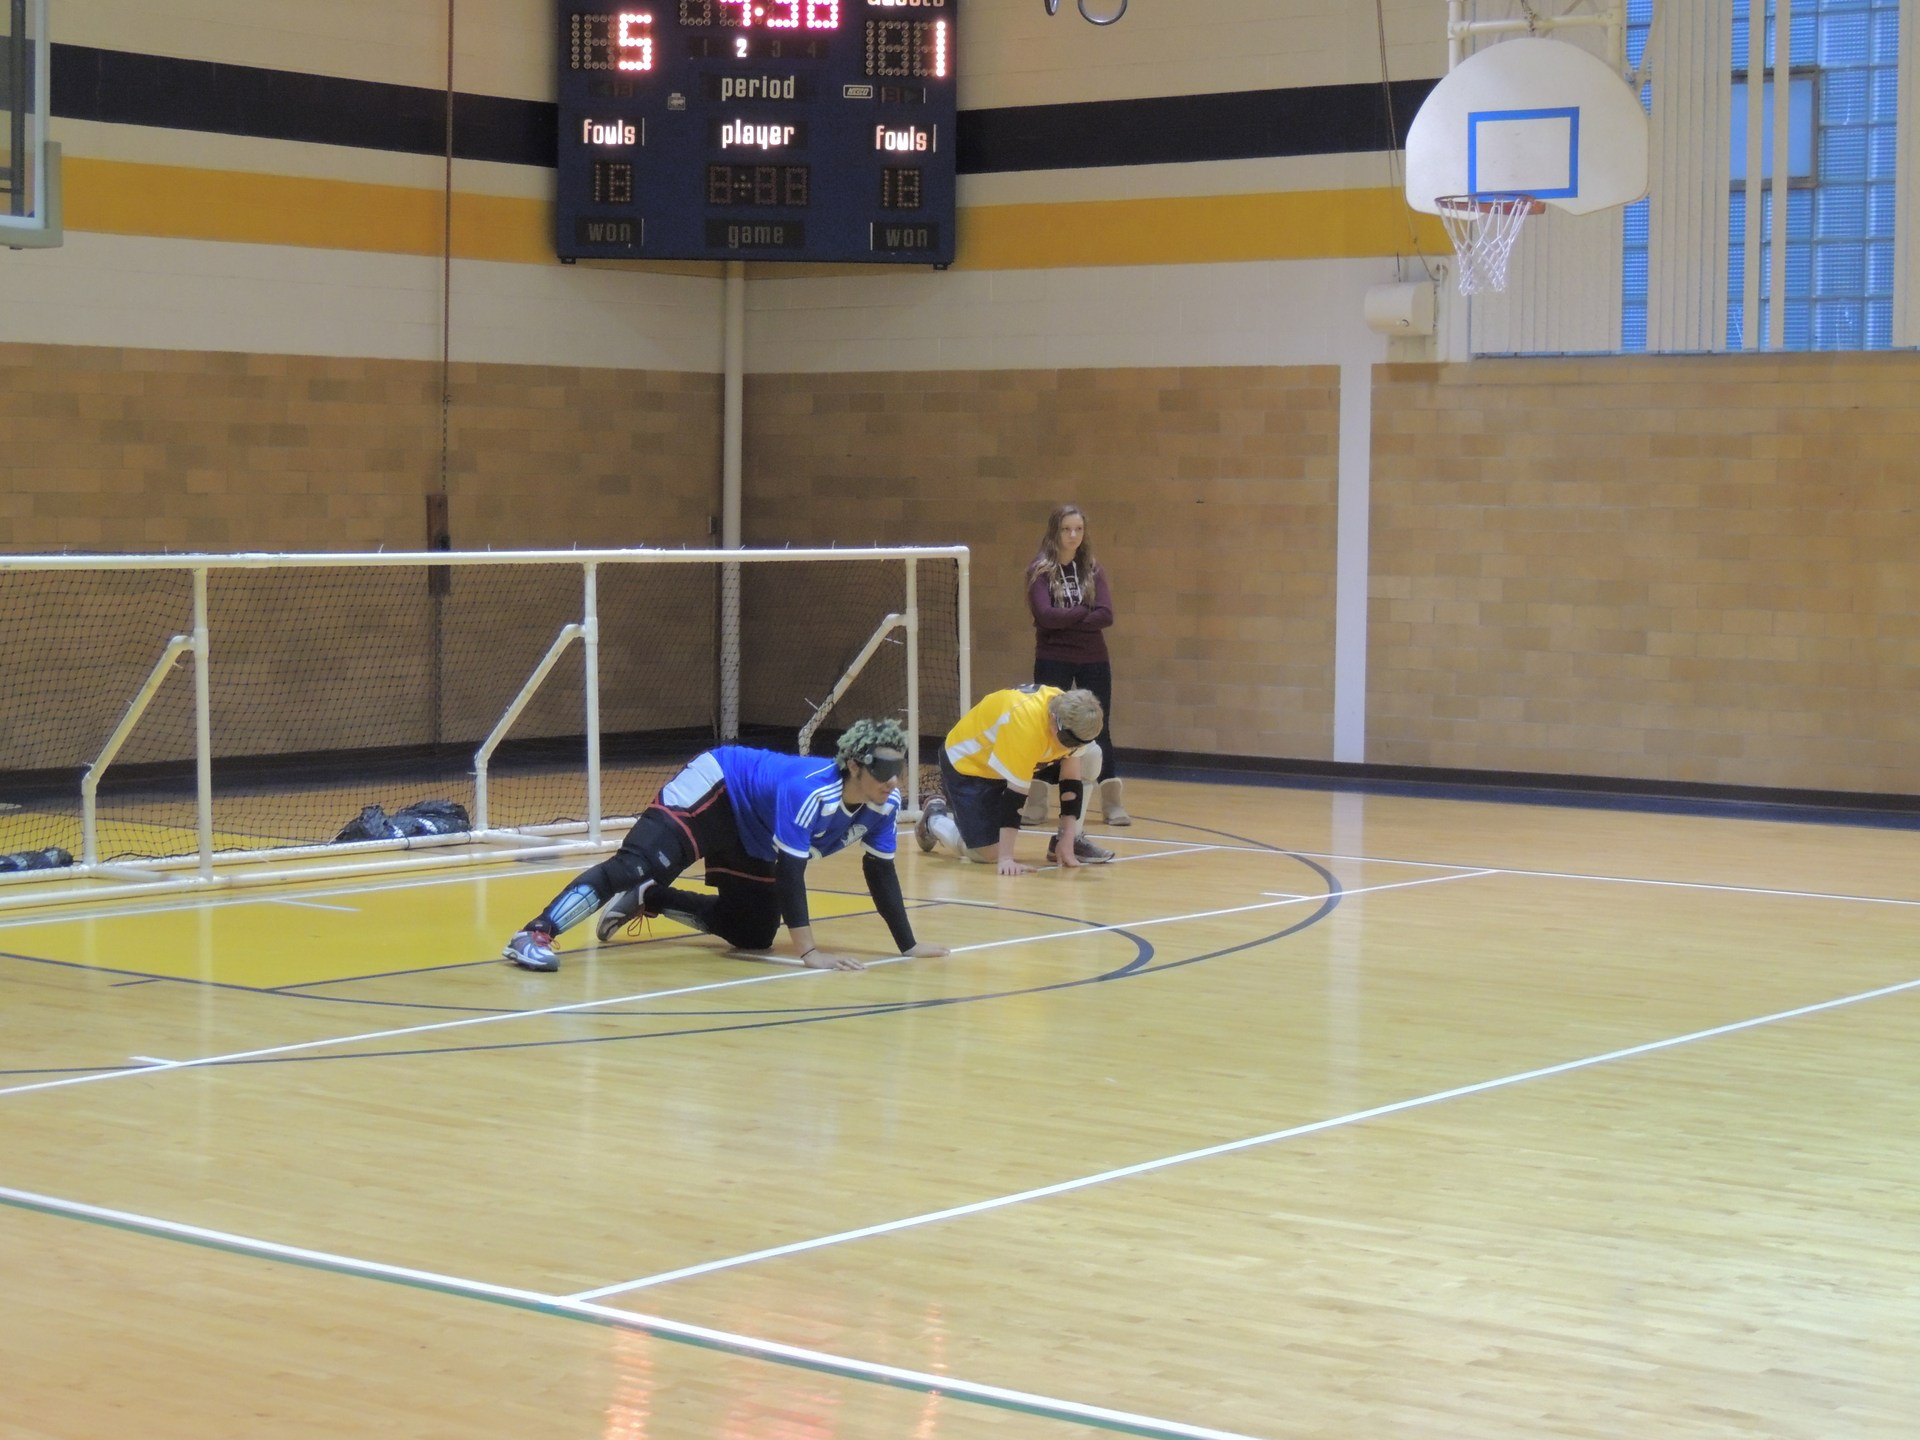 Two students kneeling in front of the Goalball goal to defend it.